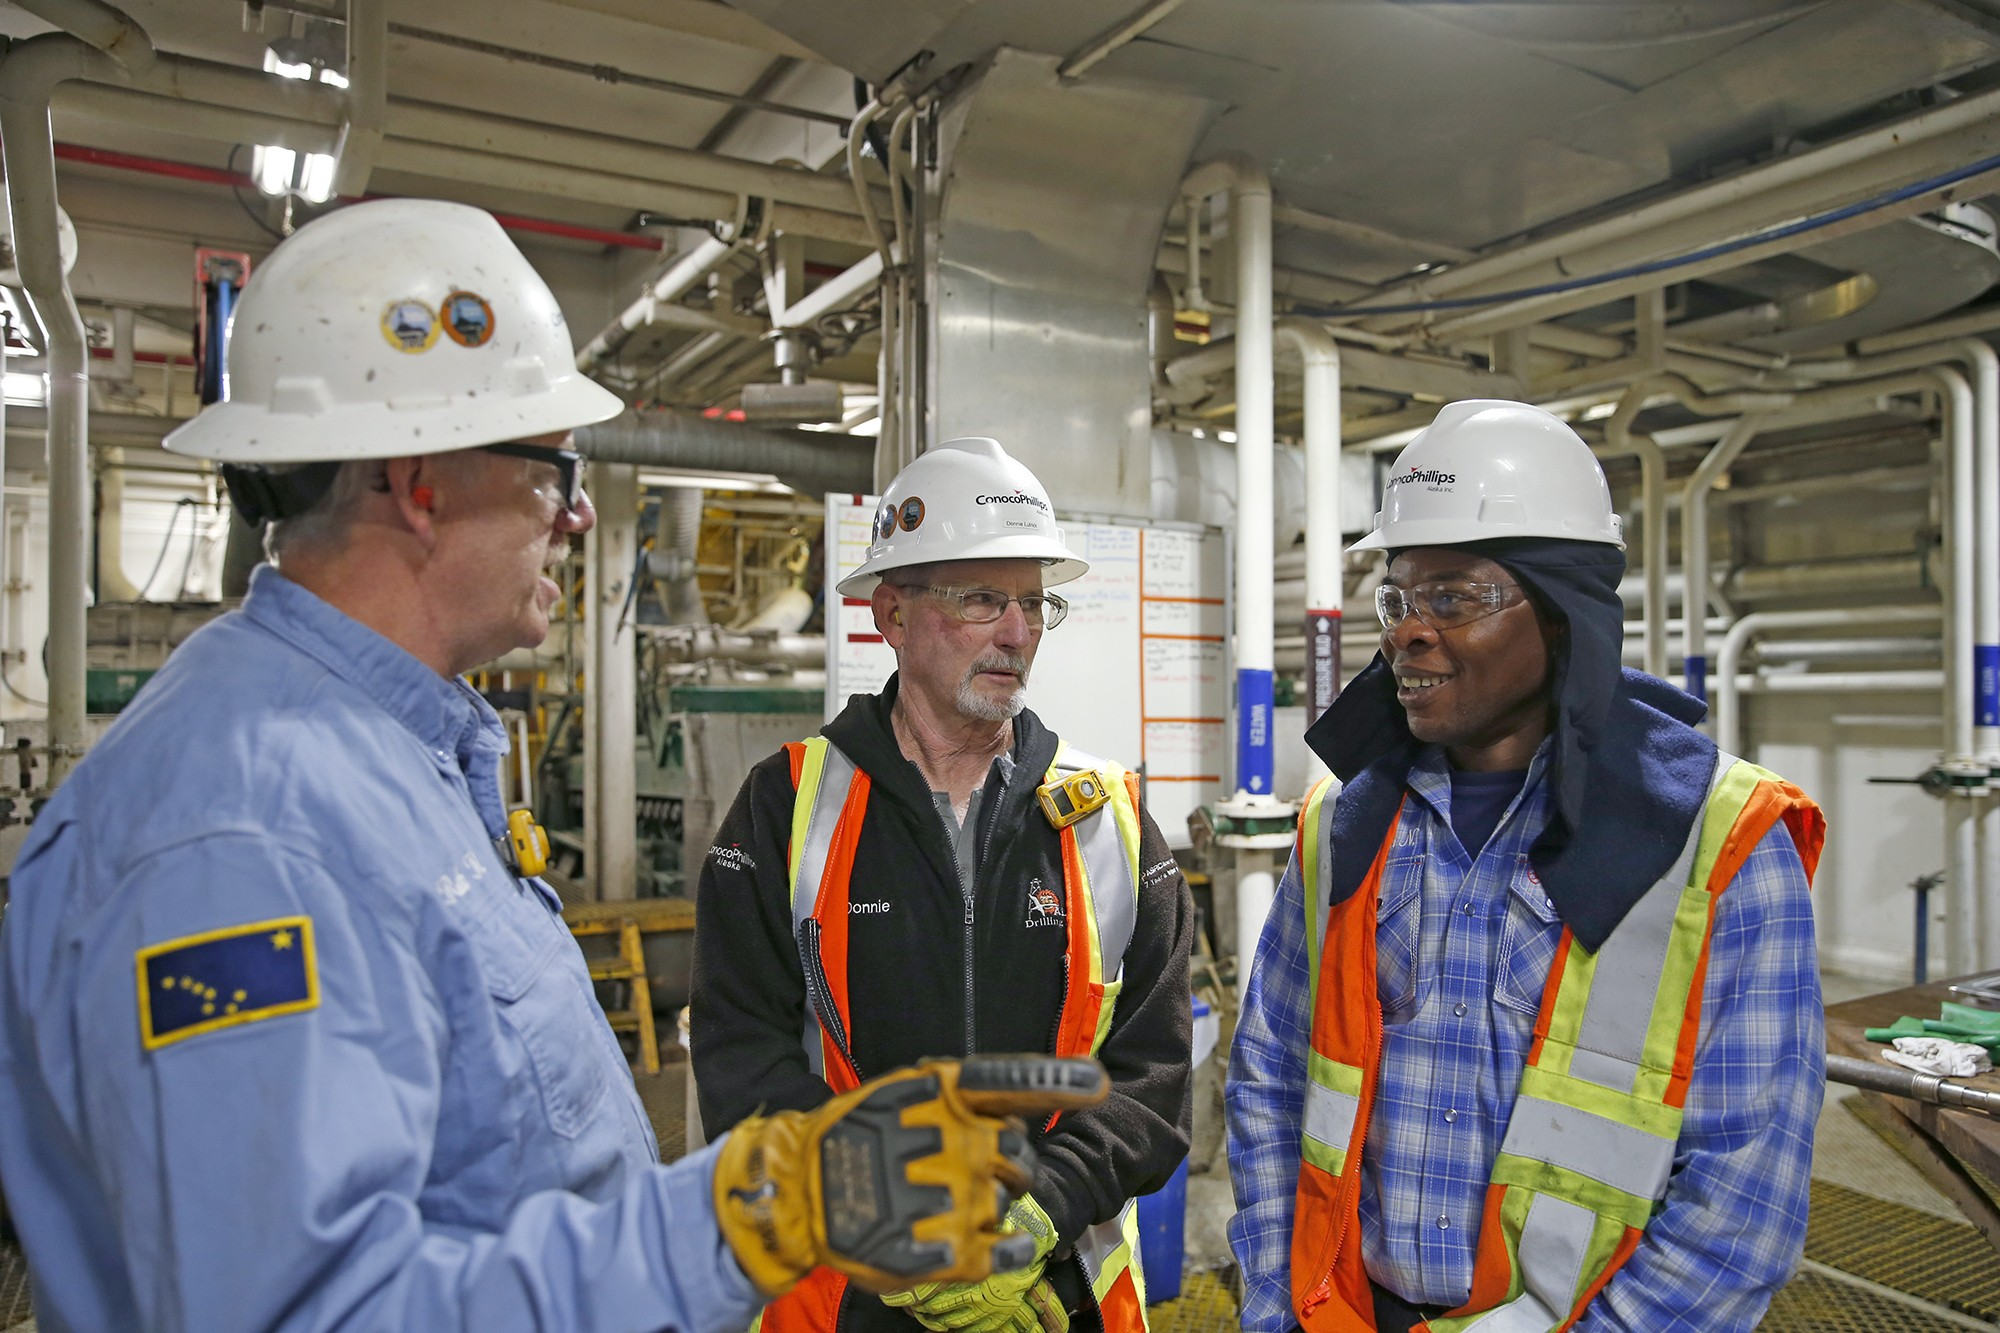 3 men in safety gear having conversation indoors with pipes in background